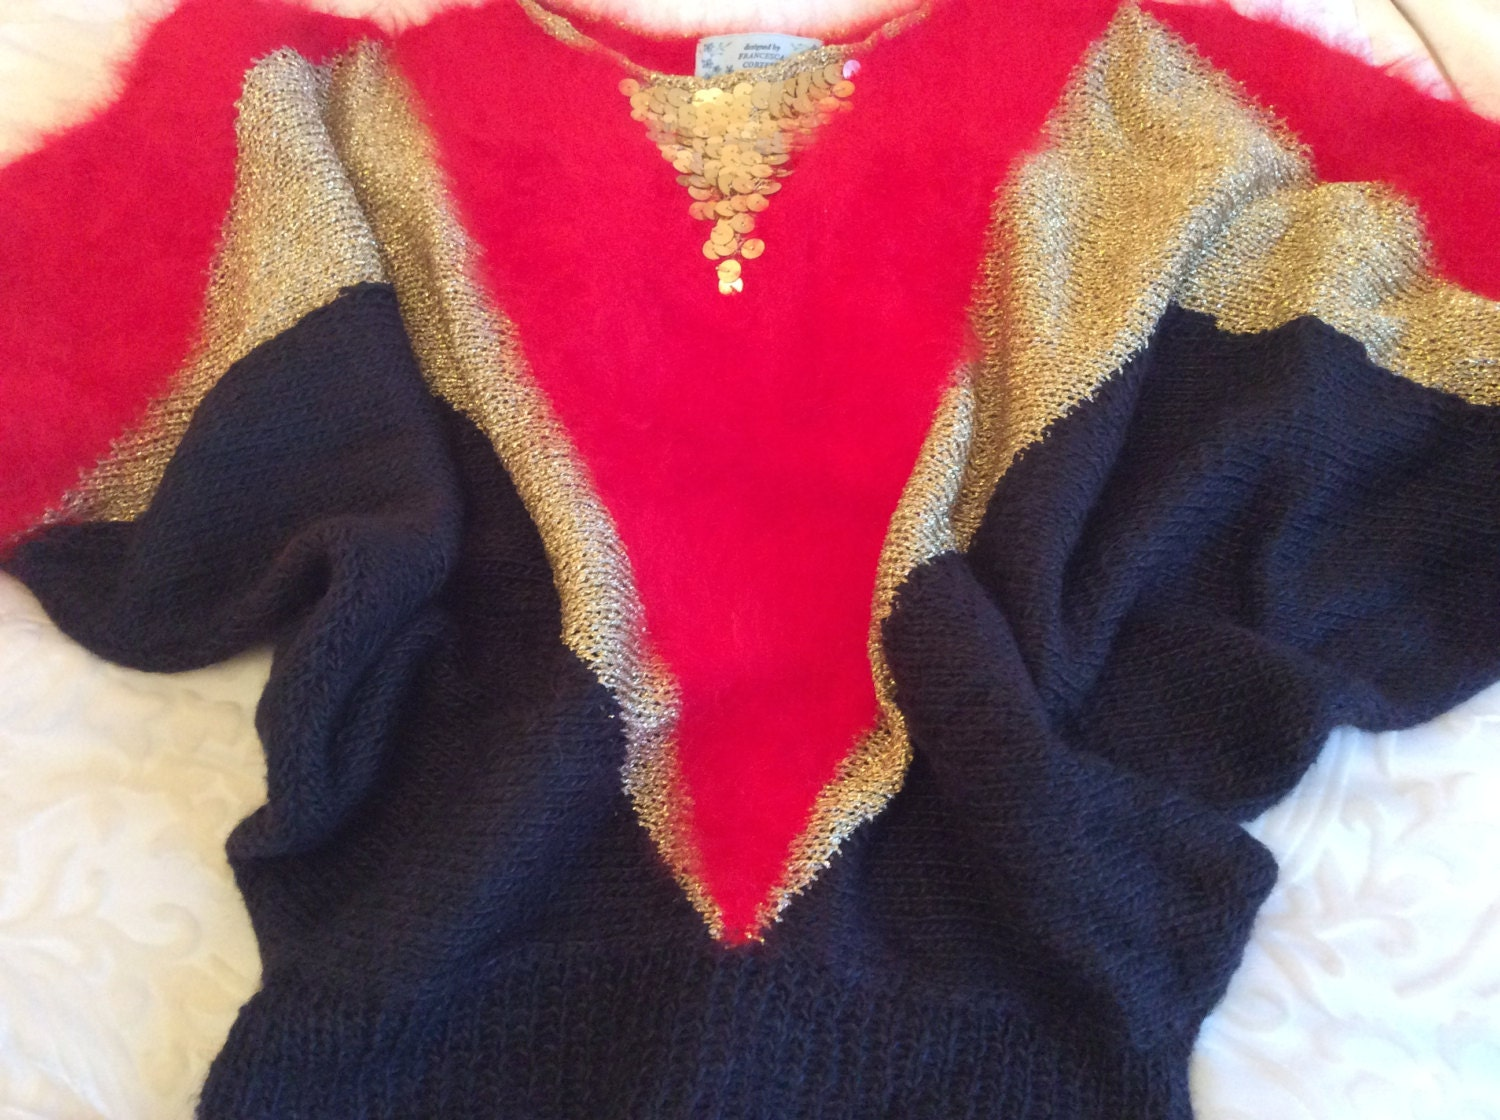 Red 100 angora hand knit sweater with black silk panelsgold lurex yarn  gold sequins